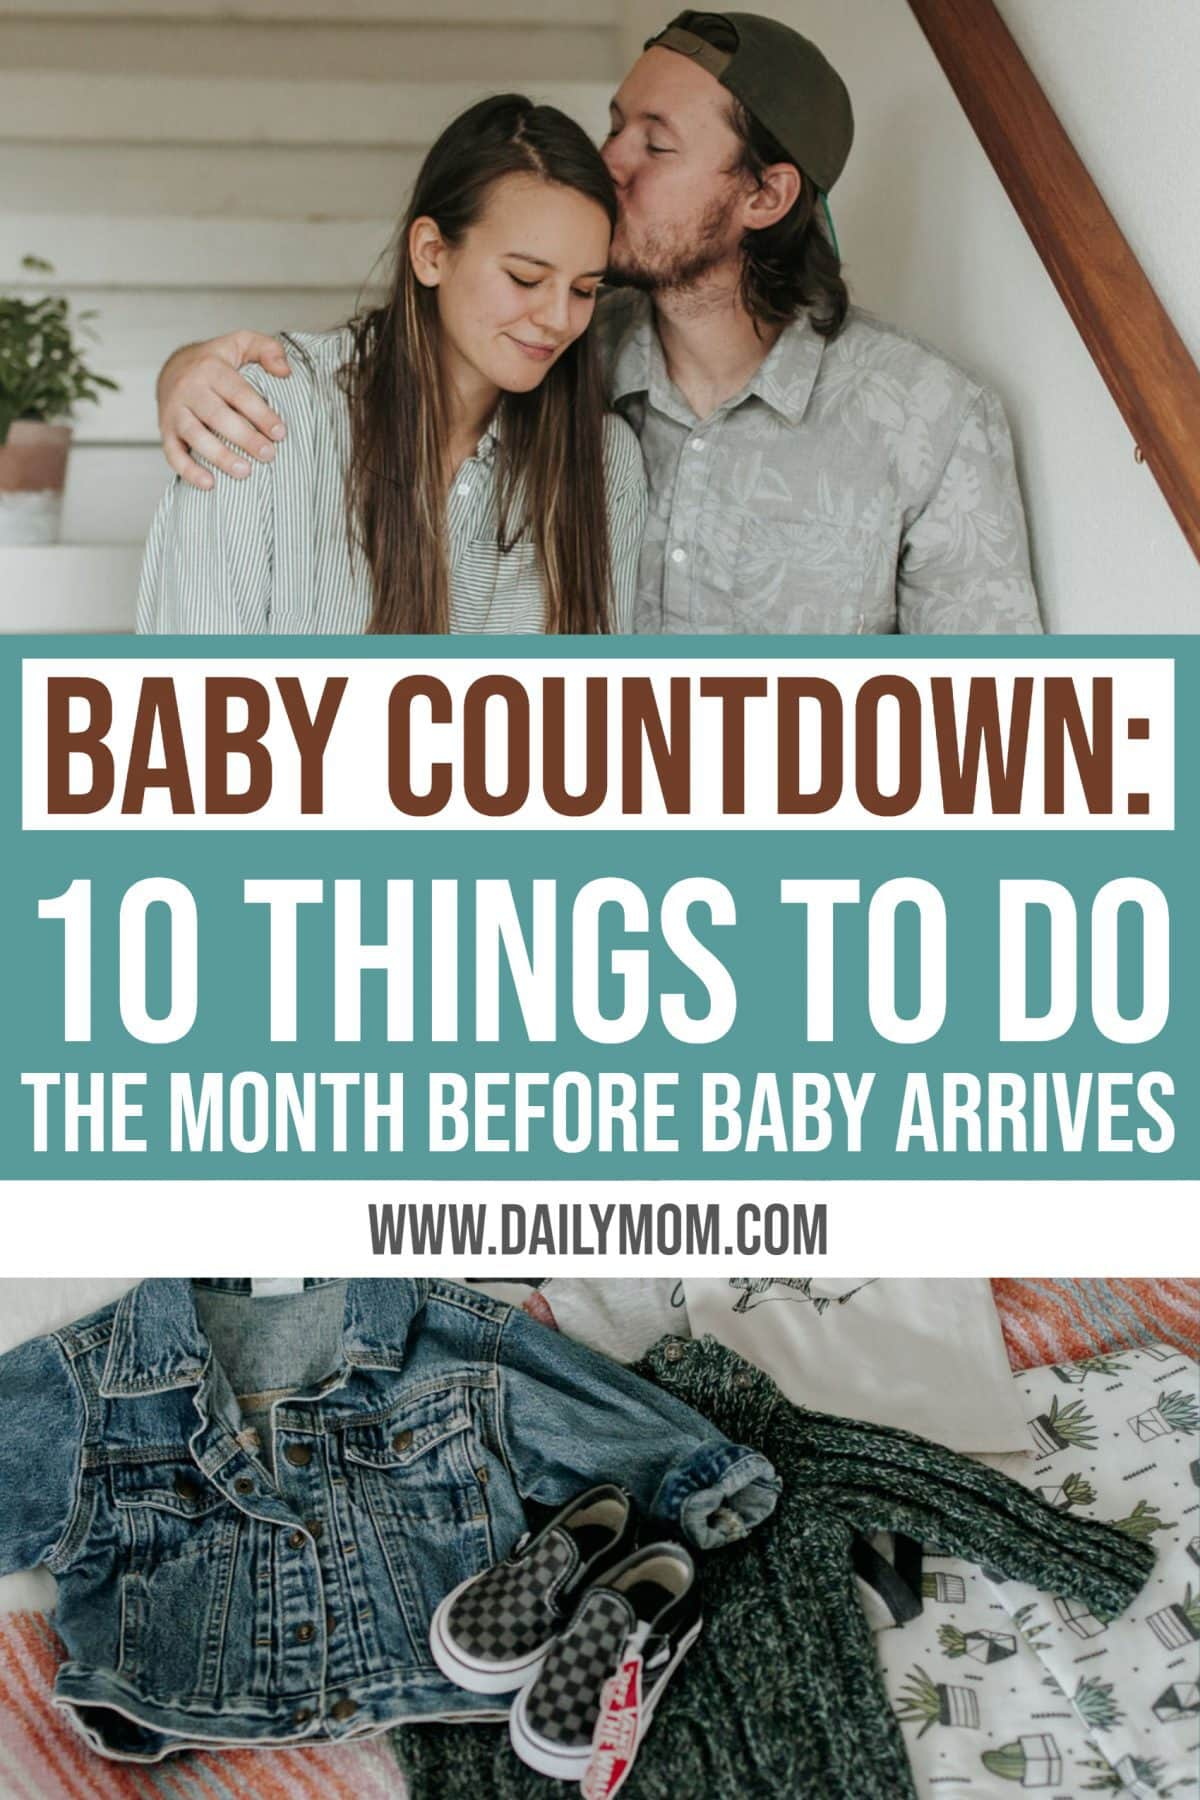 daily mom parent portal preparing for baby